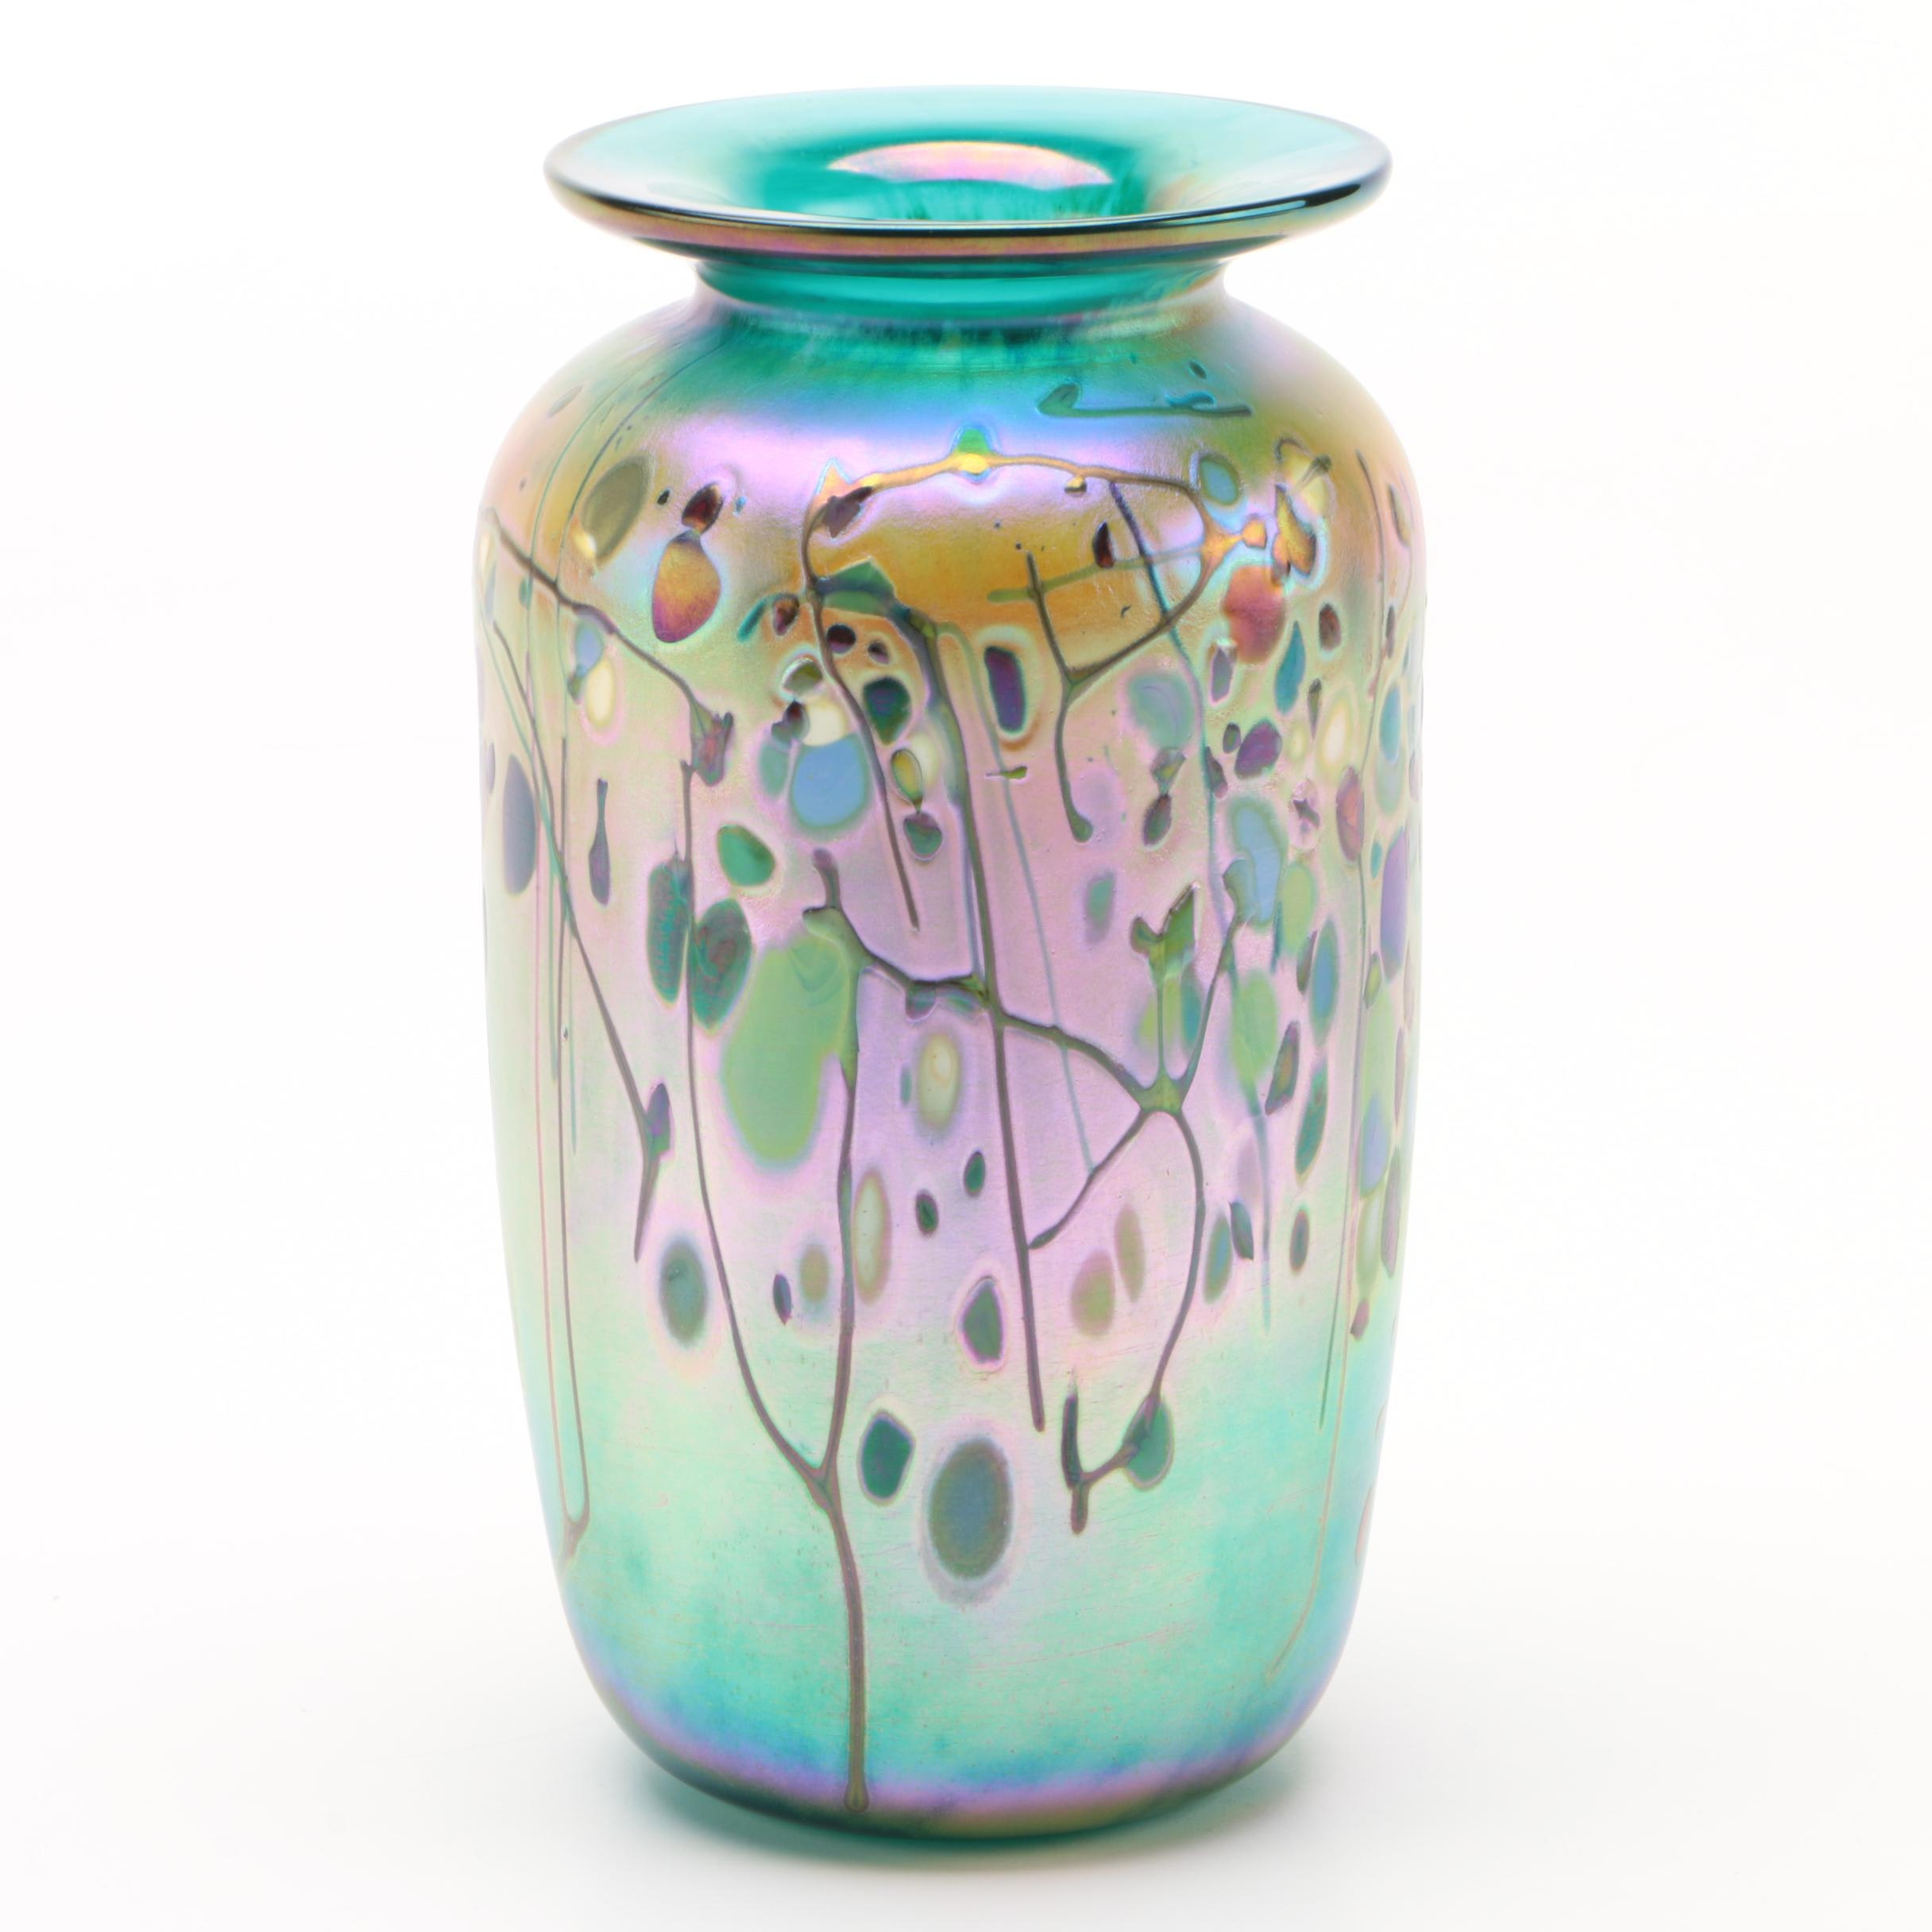 Iridescent Art Glass Vase, Signed and Dated 1999